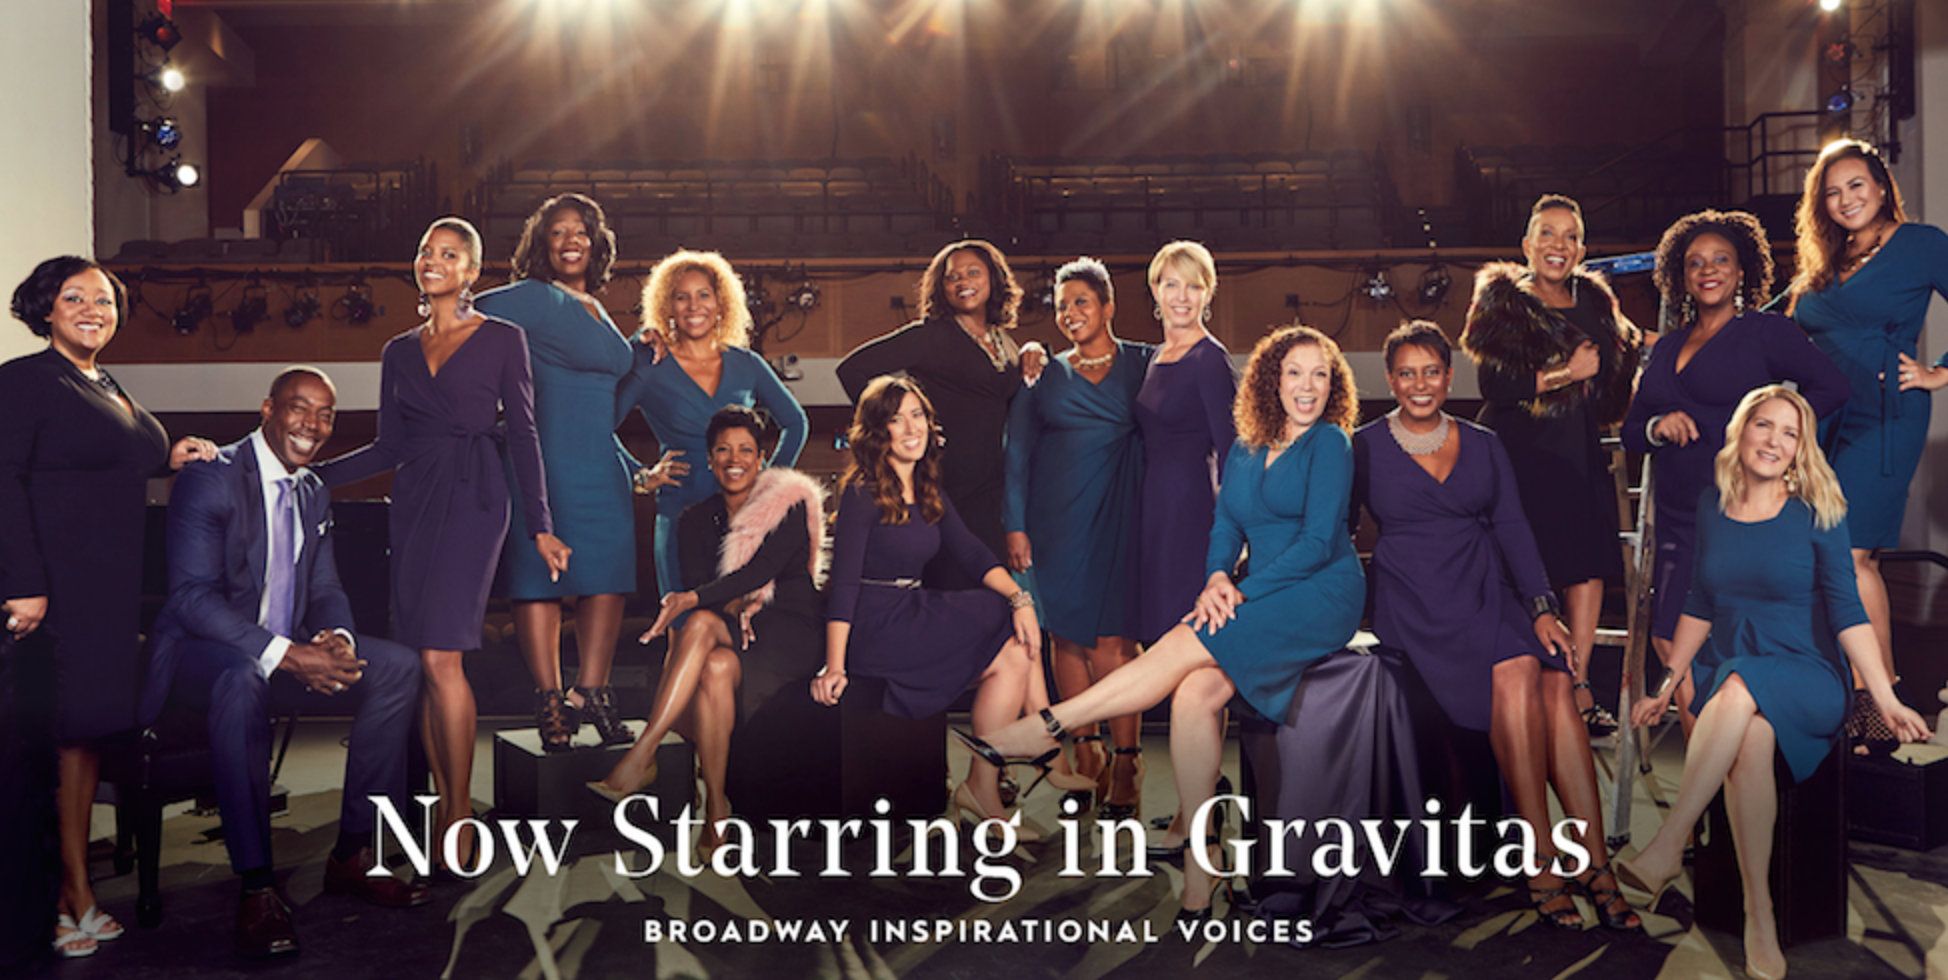 Gravitas Promotional Shoot Featuring Broadway Inspirational Voices